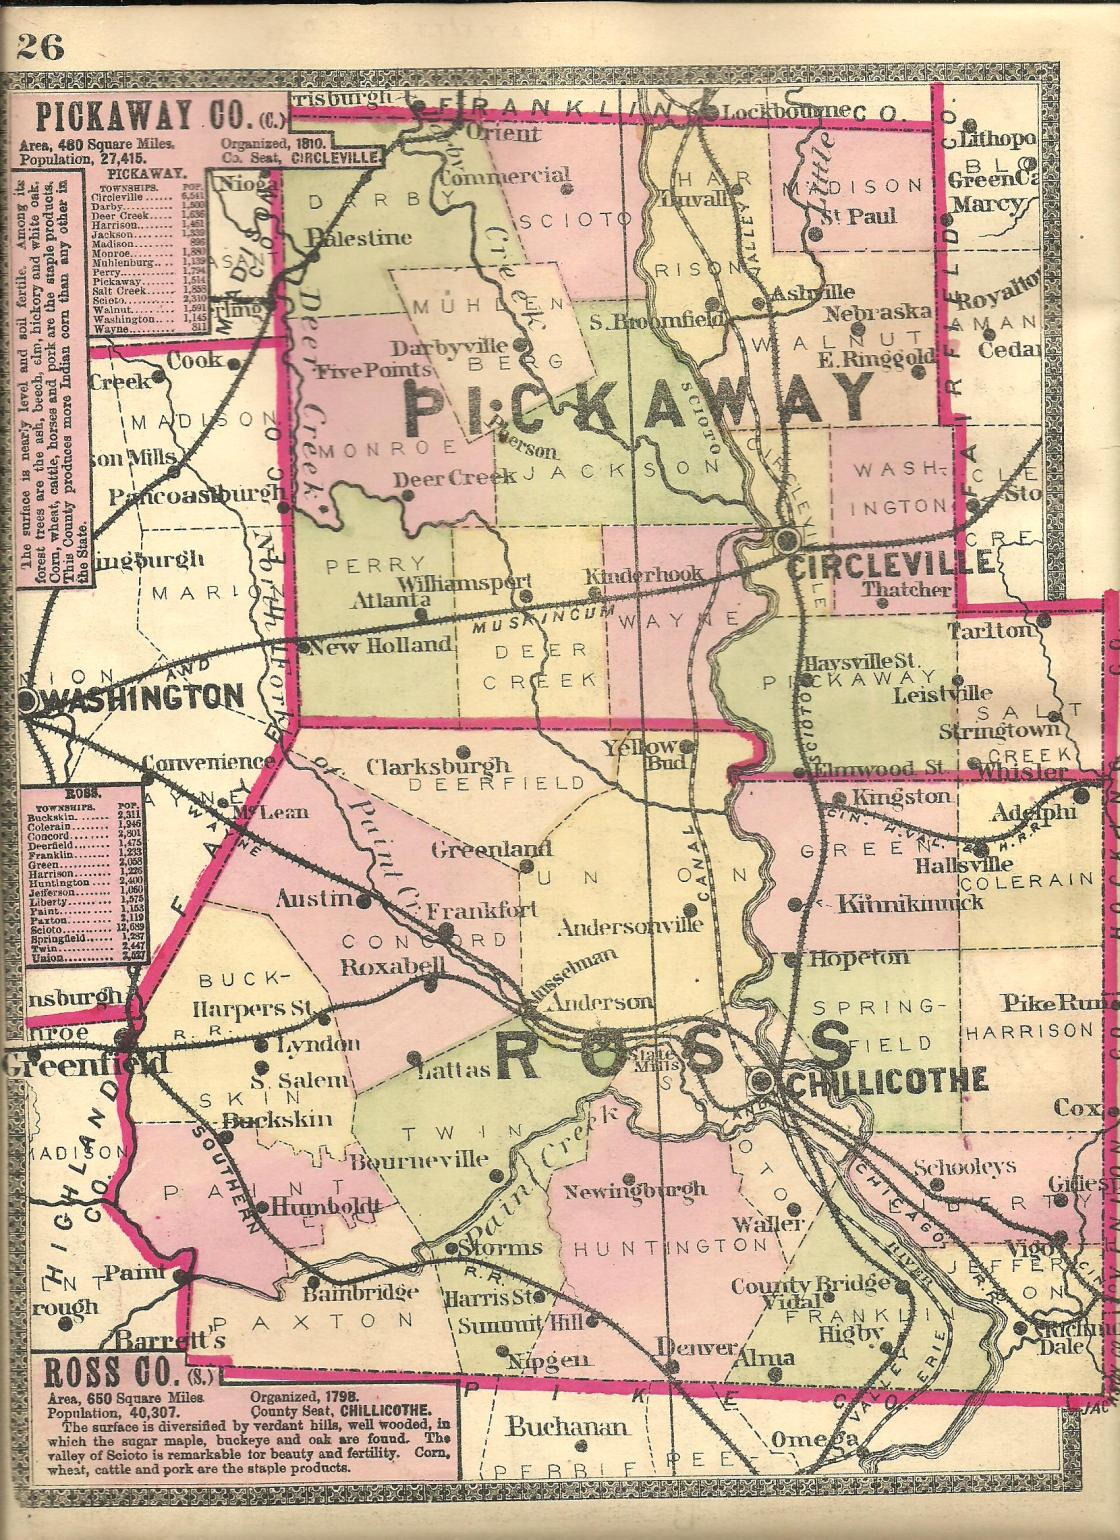 Pickaway County Ohio Ghost Town Exploration Co